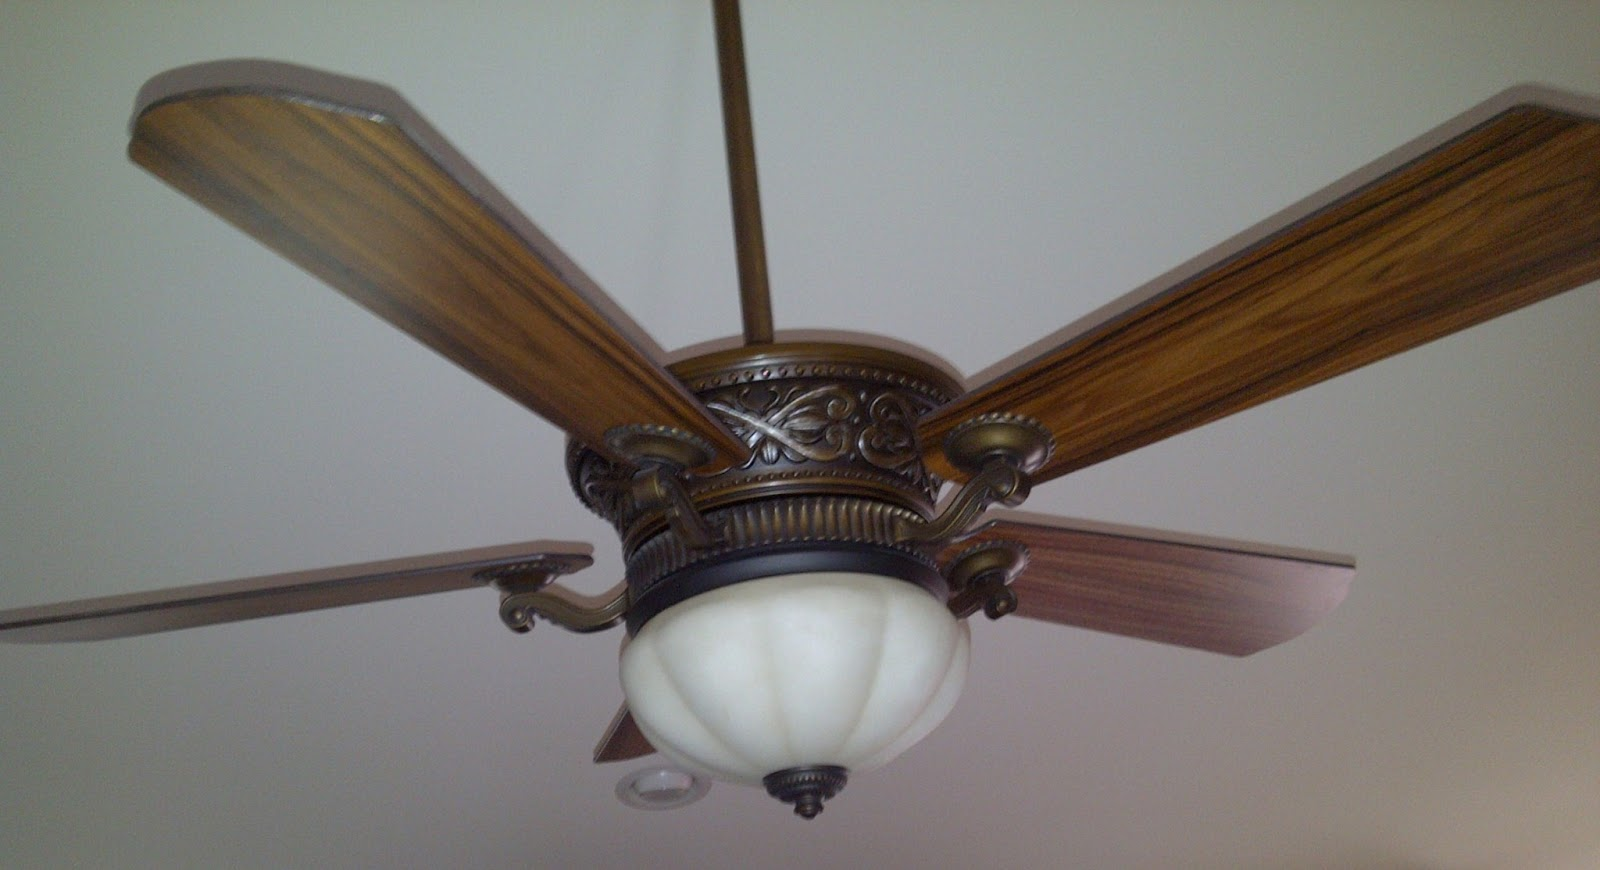 Enjoyable Ceiling Fan Upgrade Install A Ceiling Fan With Uplight And Remote Wiring Cloud Eachirenstrafr09Org